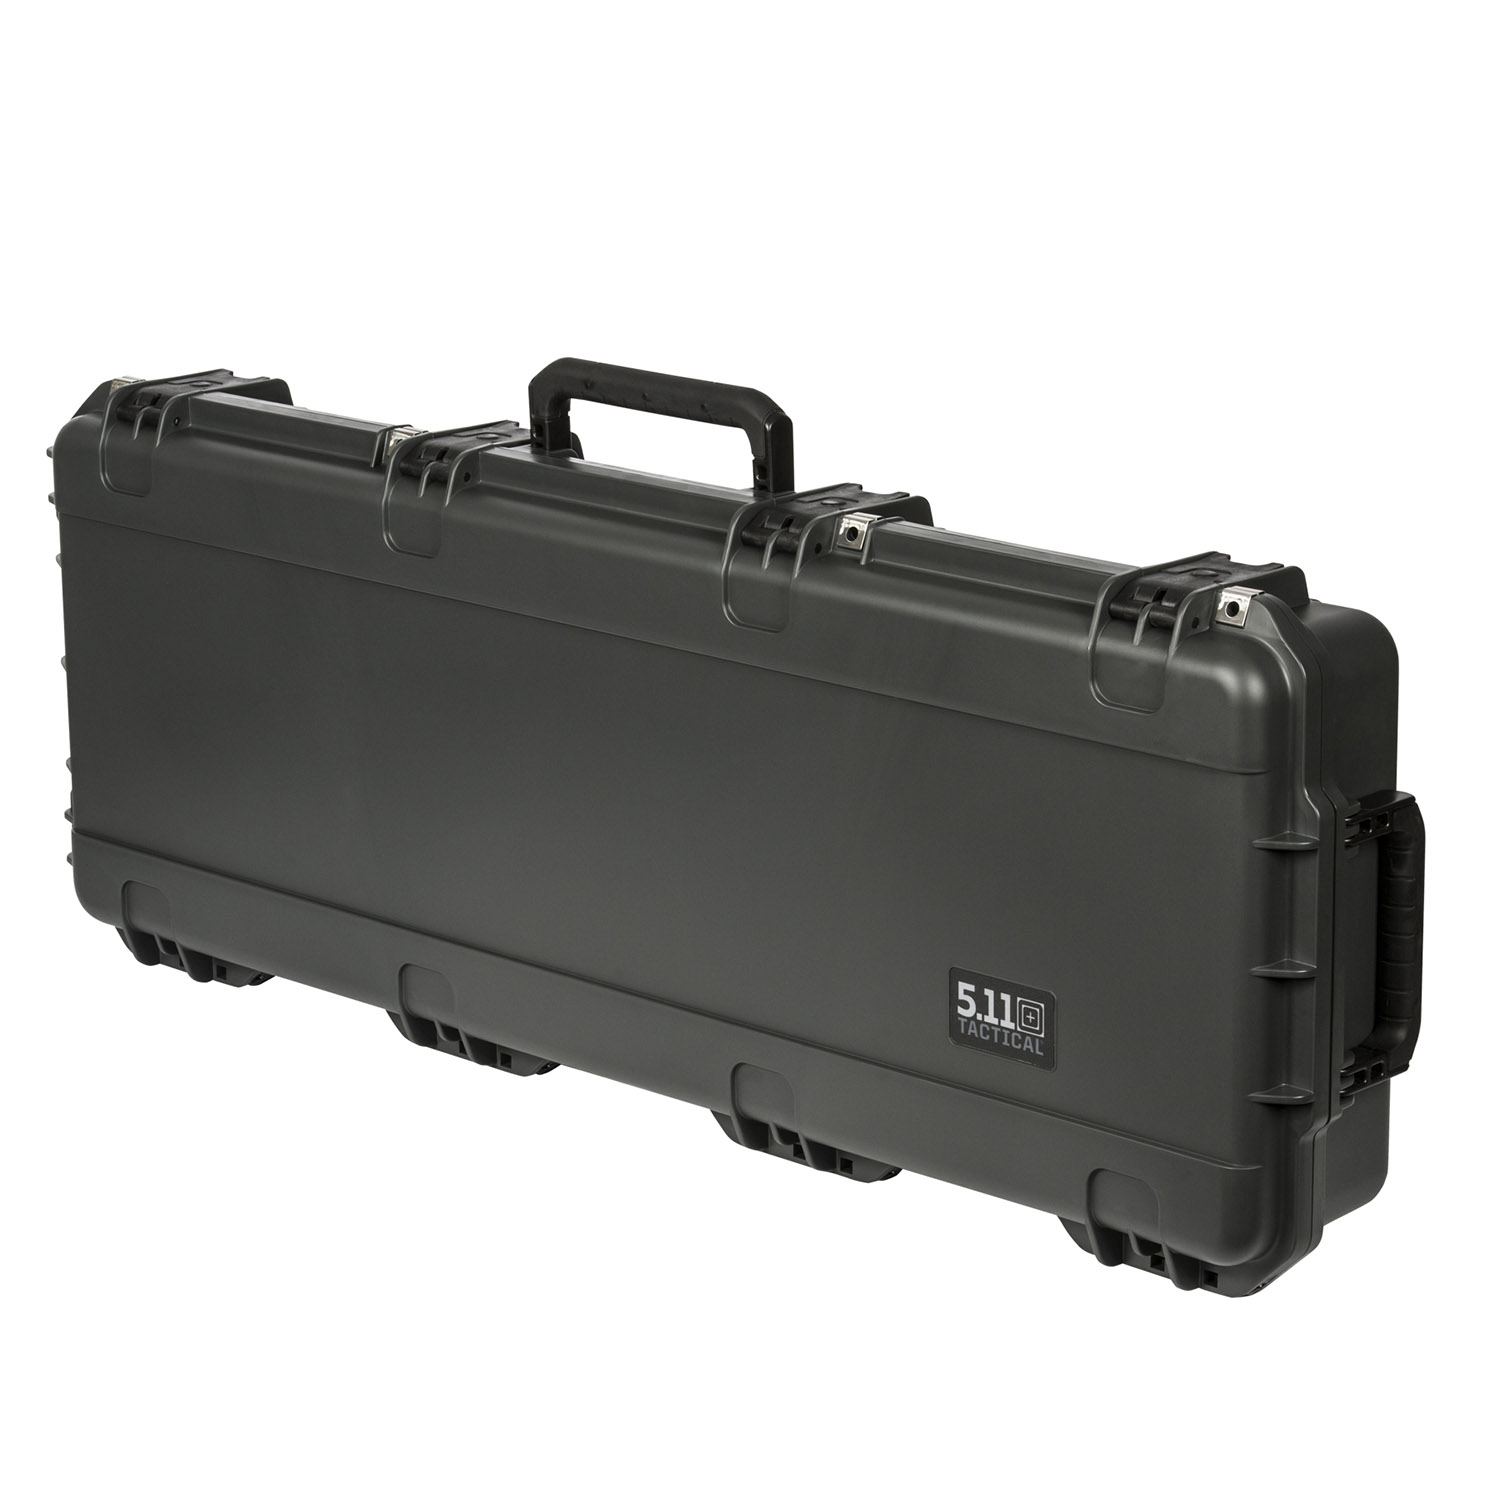 5.11 Tactical Hard Case 42